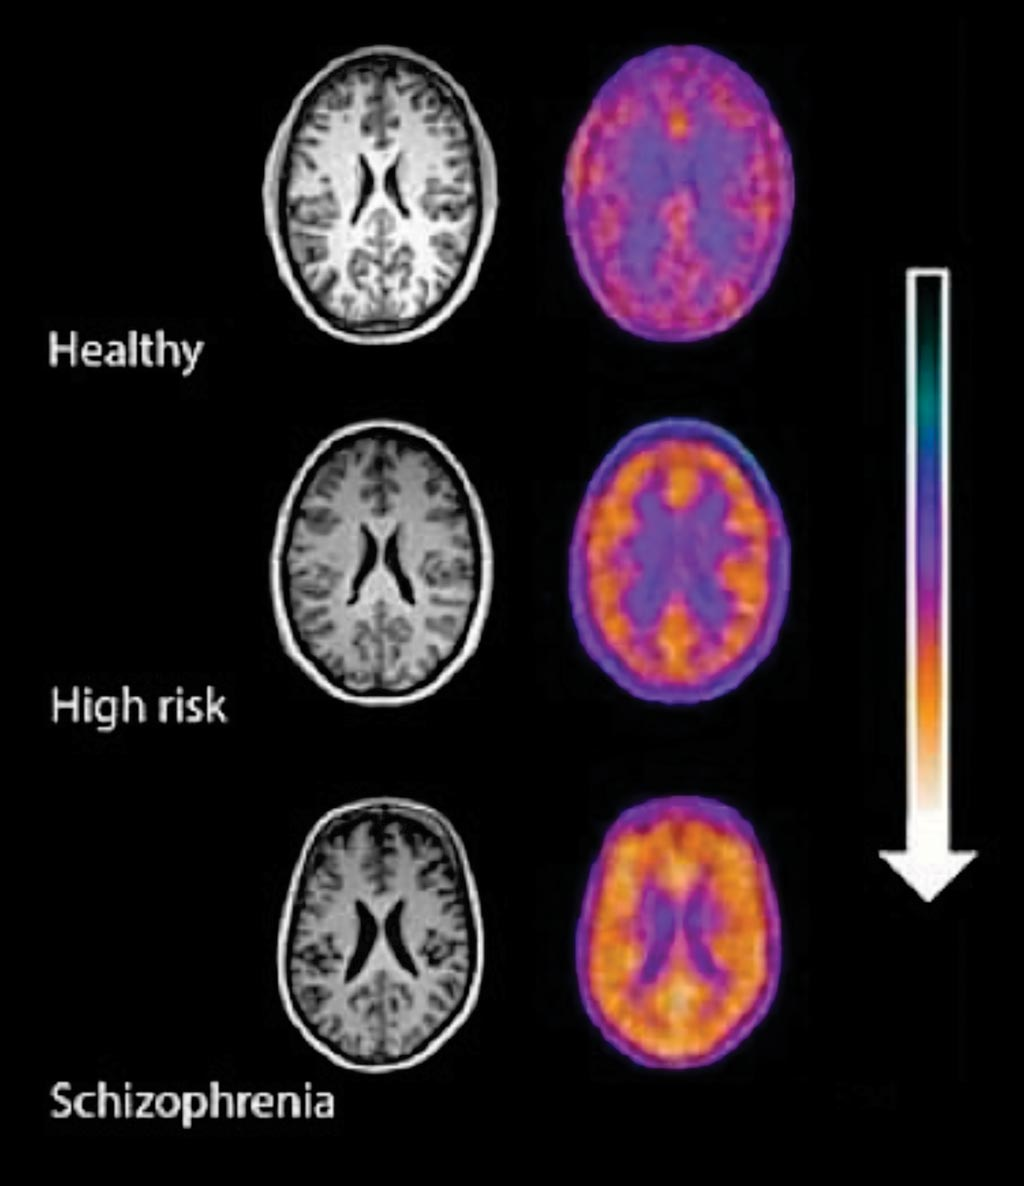 Image: Positron emission tomography (PET) imaging signal in healthy volunteers, high-risk subjects and patients with schizophrenia showing a stepwise elevation in microglial activity (orange) as severity of illness increases (Photo courtesy of MRC\'s Clinical Sciences Centre).